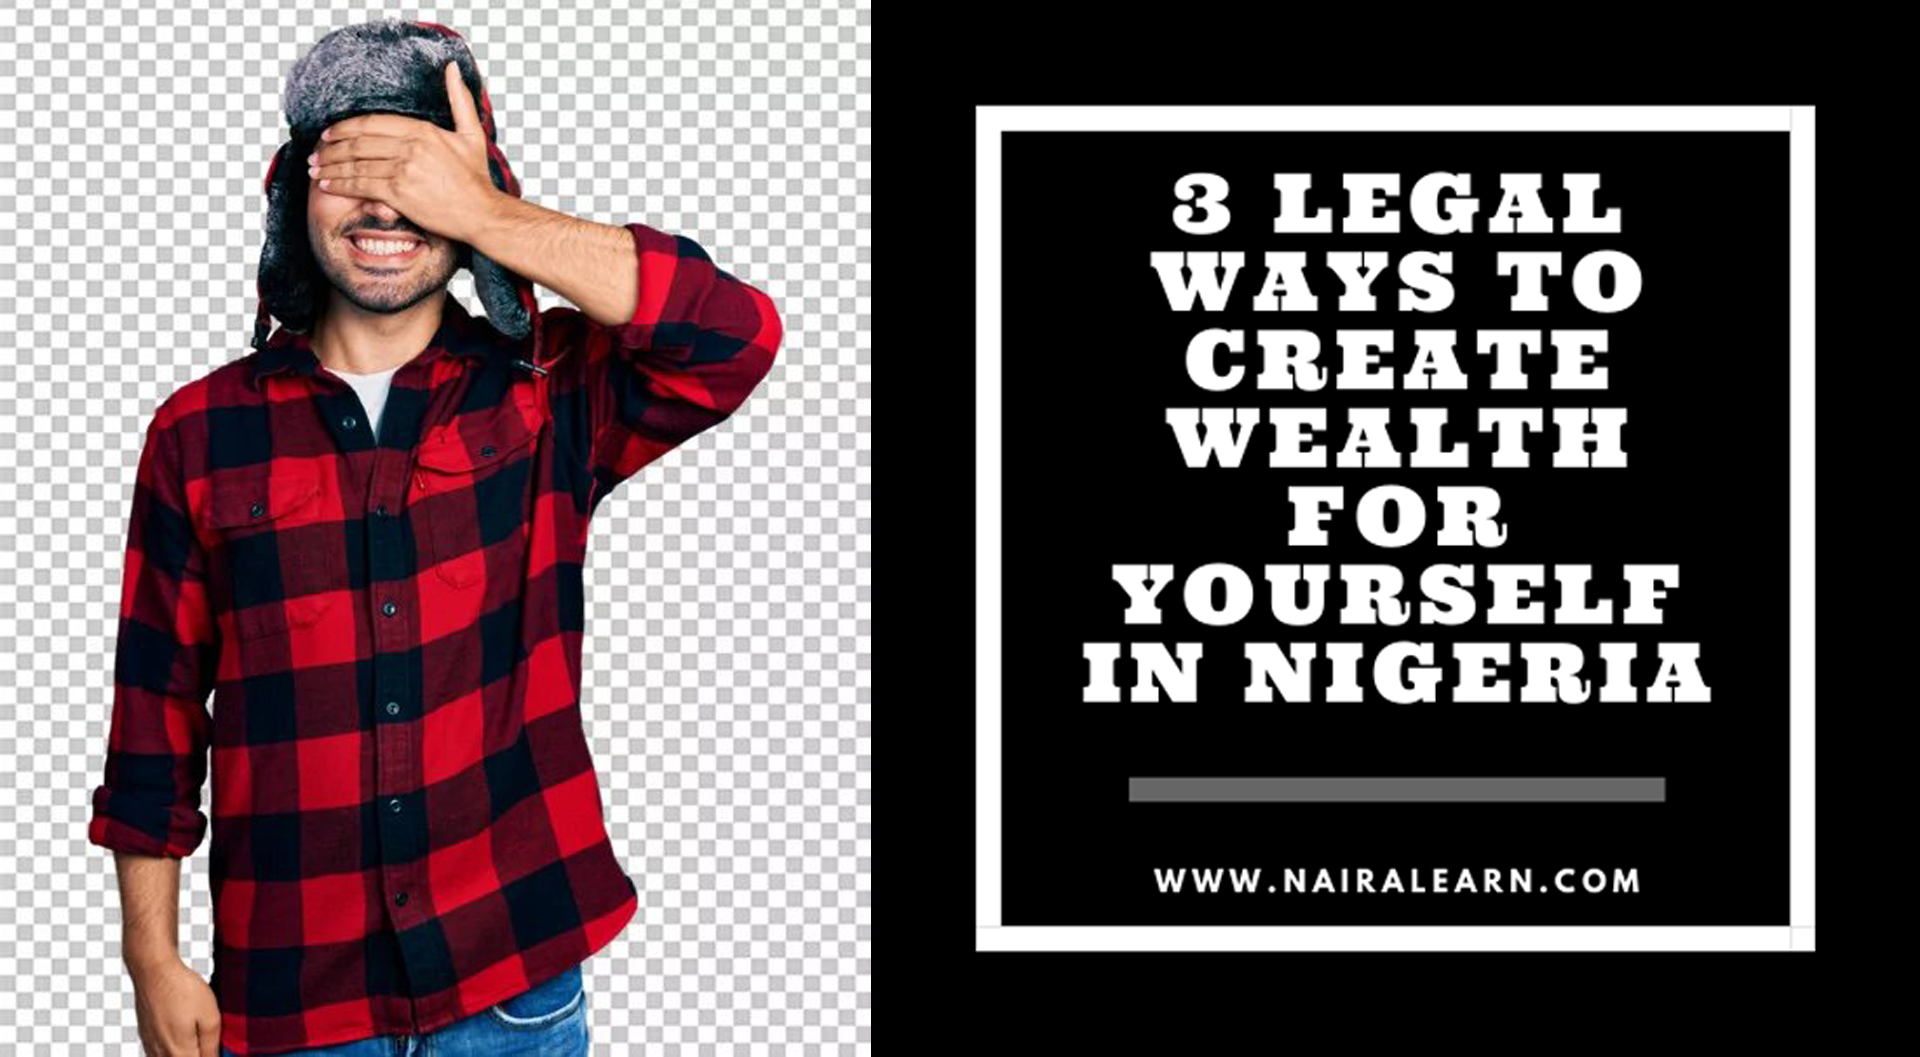 There are only 3 legal ways to create wealth for yourself in Nigeria